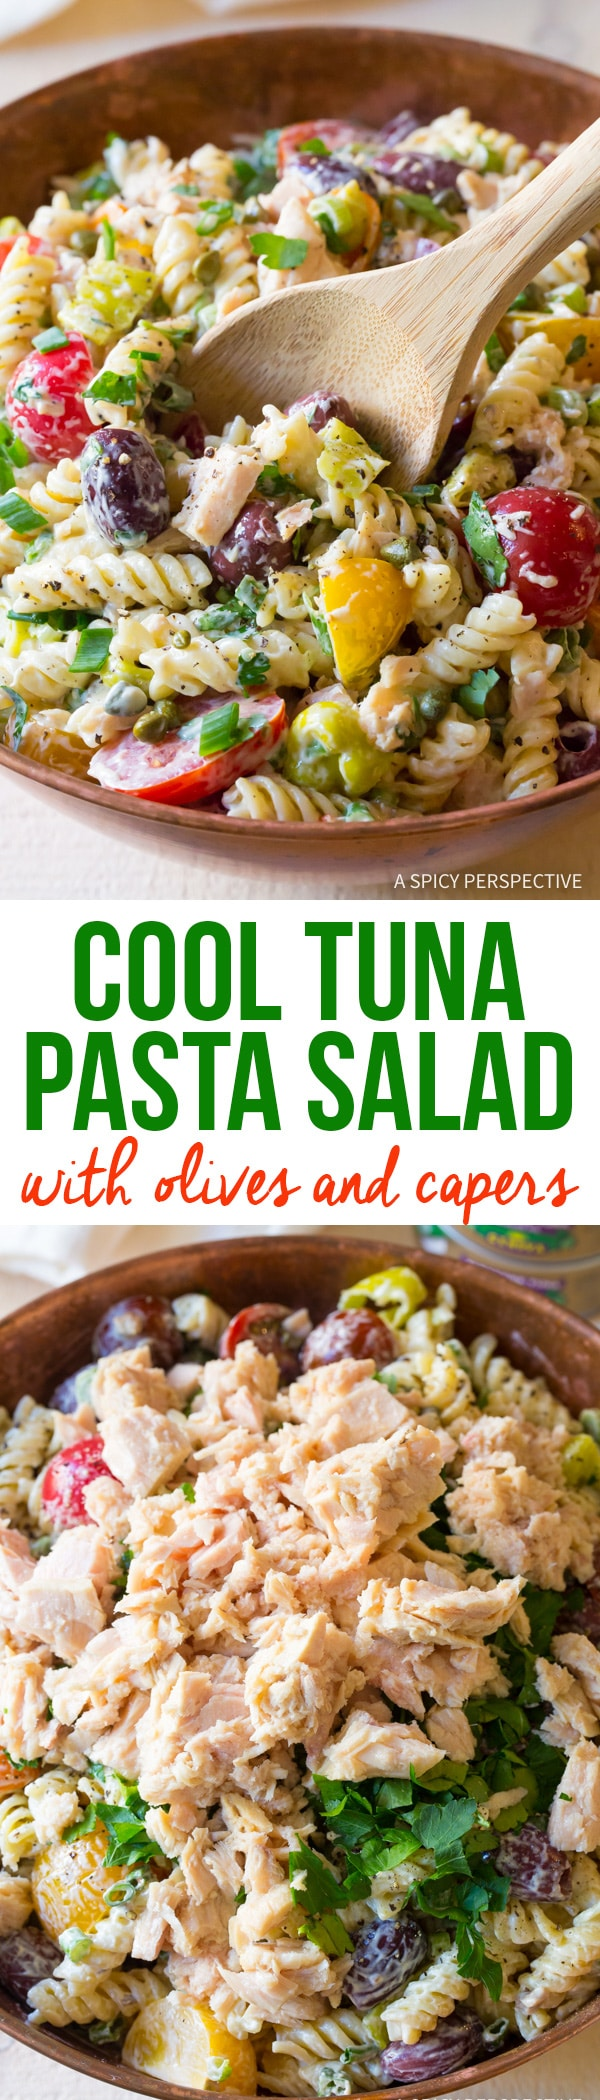 Cold Tuna Pasta Salad with Olives and Capers Recipe